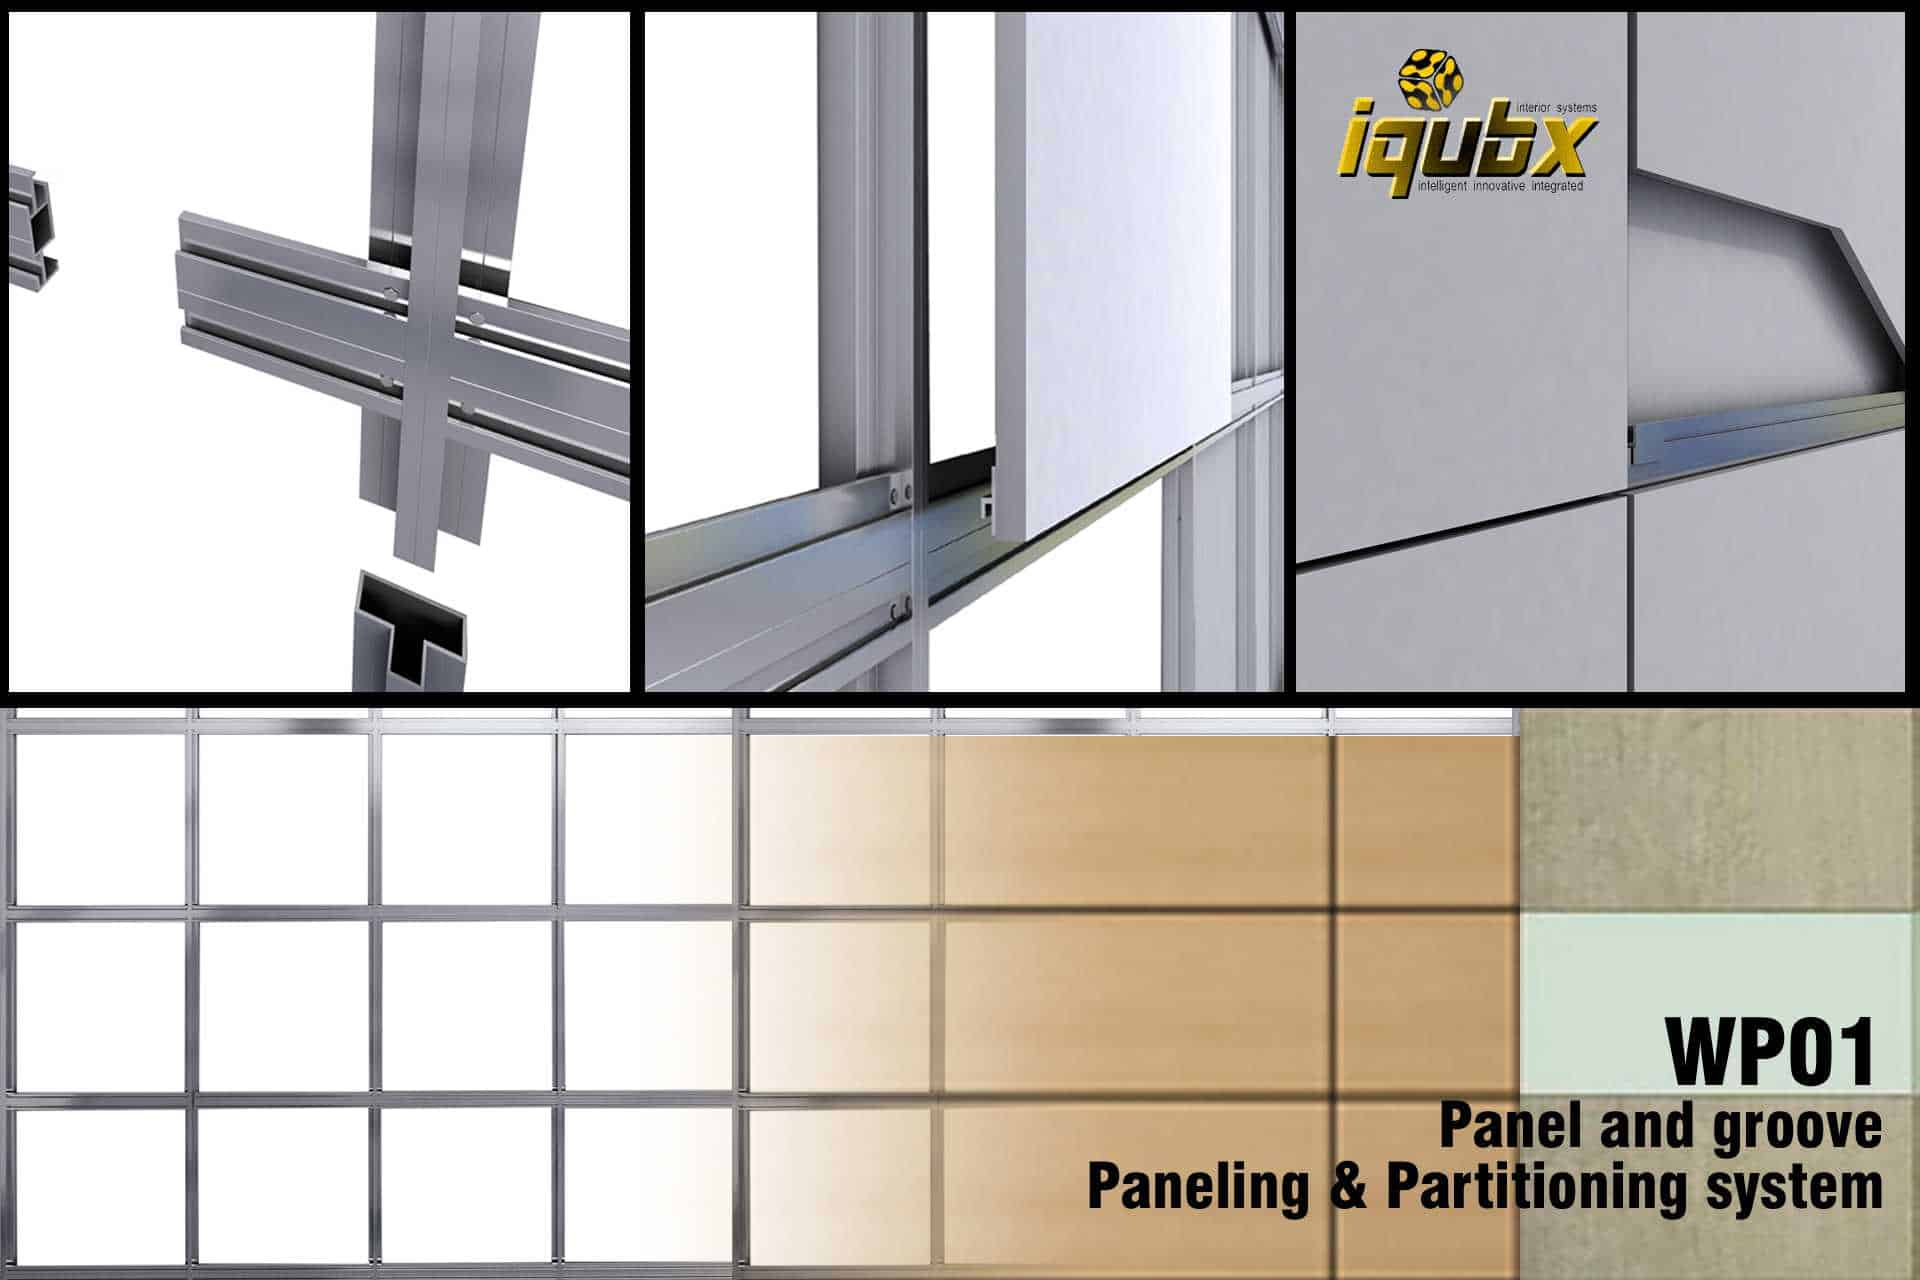 Iqubx WP01 panel and partitioning system assembly